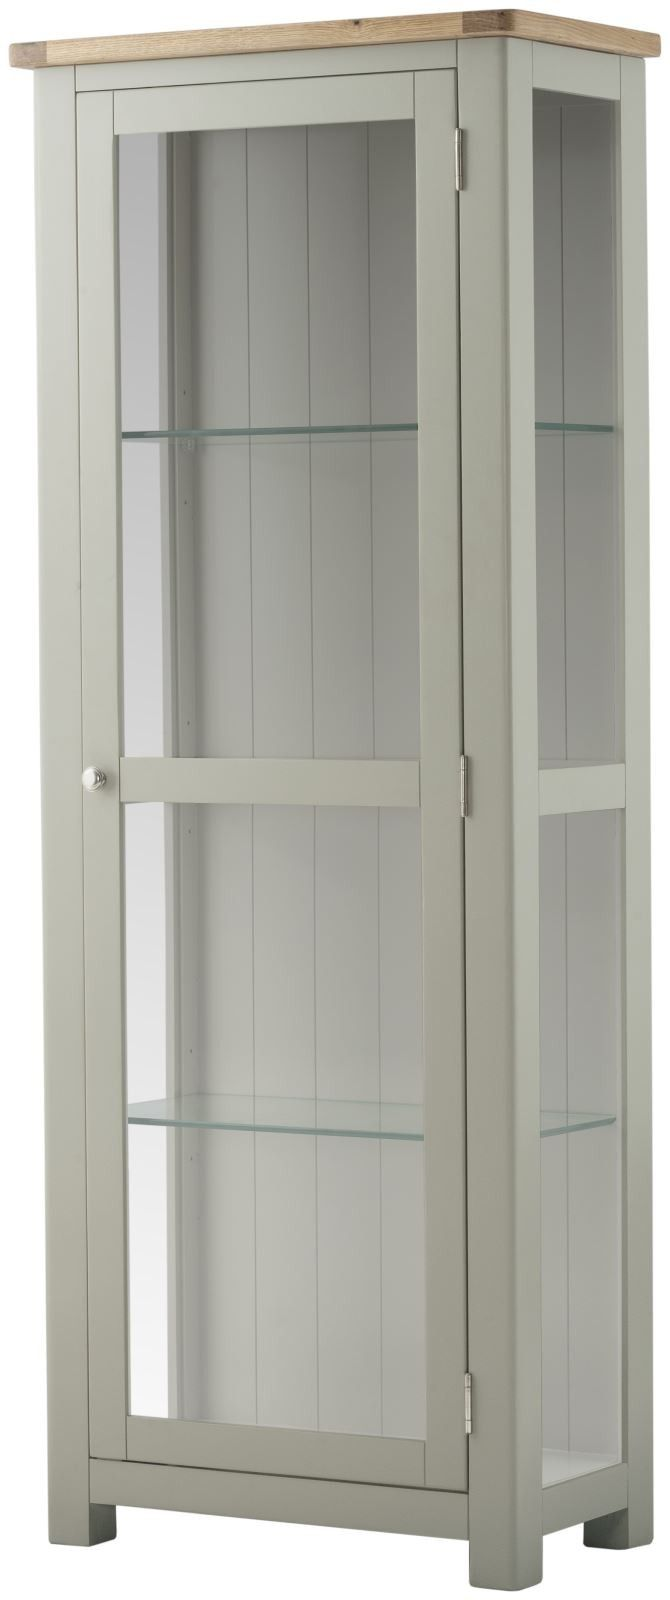 Purbeck Painted Glazed Display Cabinet